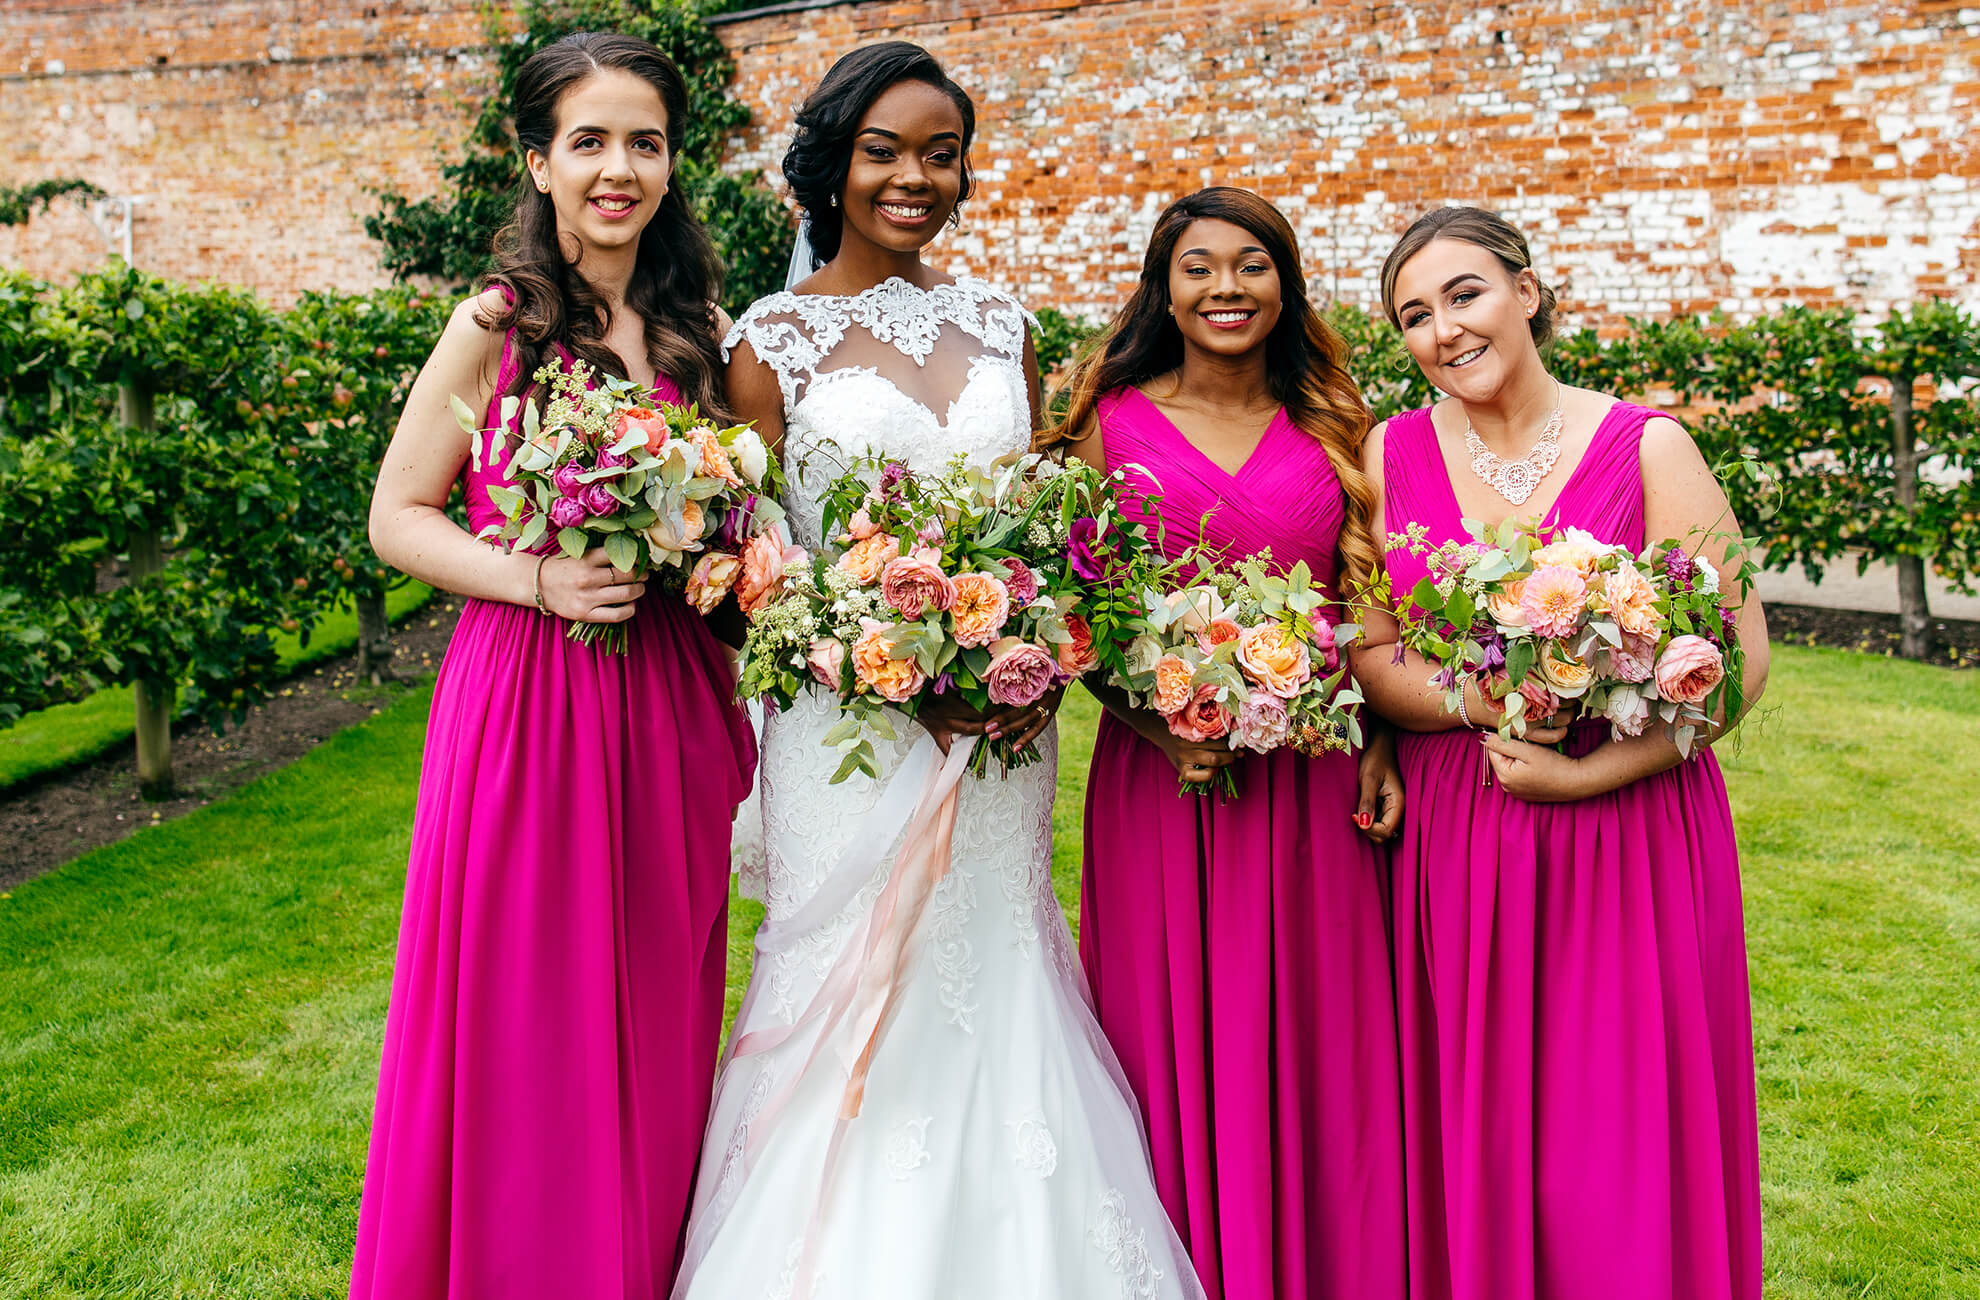 The bride is joined in the gardens at Combermere Abbey by her bridesmaids who wear fuchsia pink bridesmaid dresses